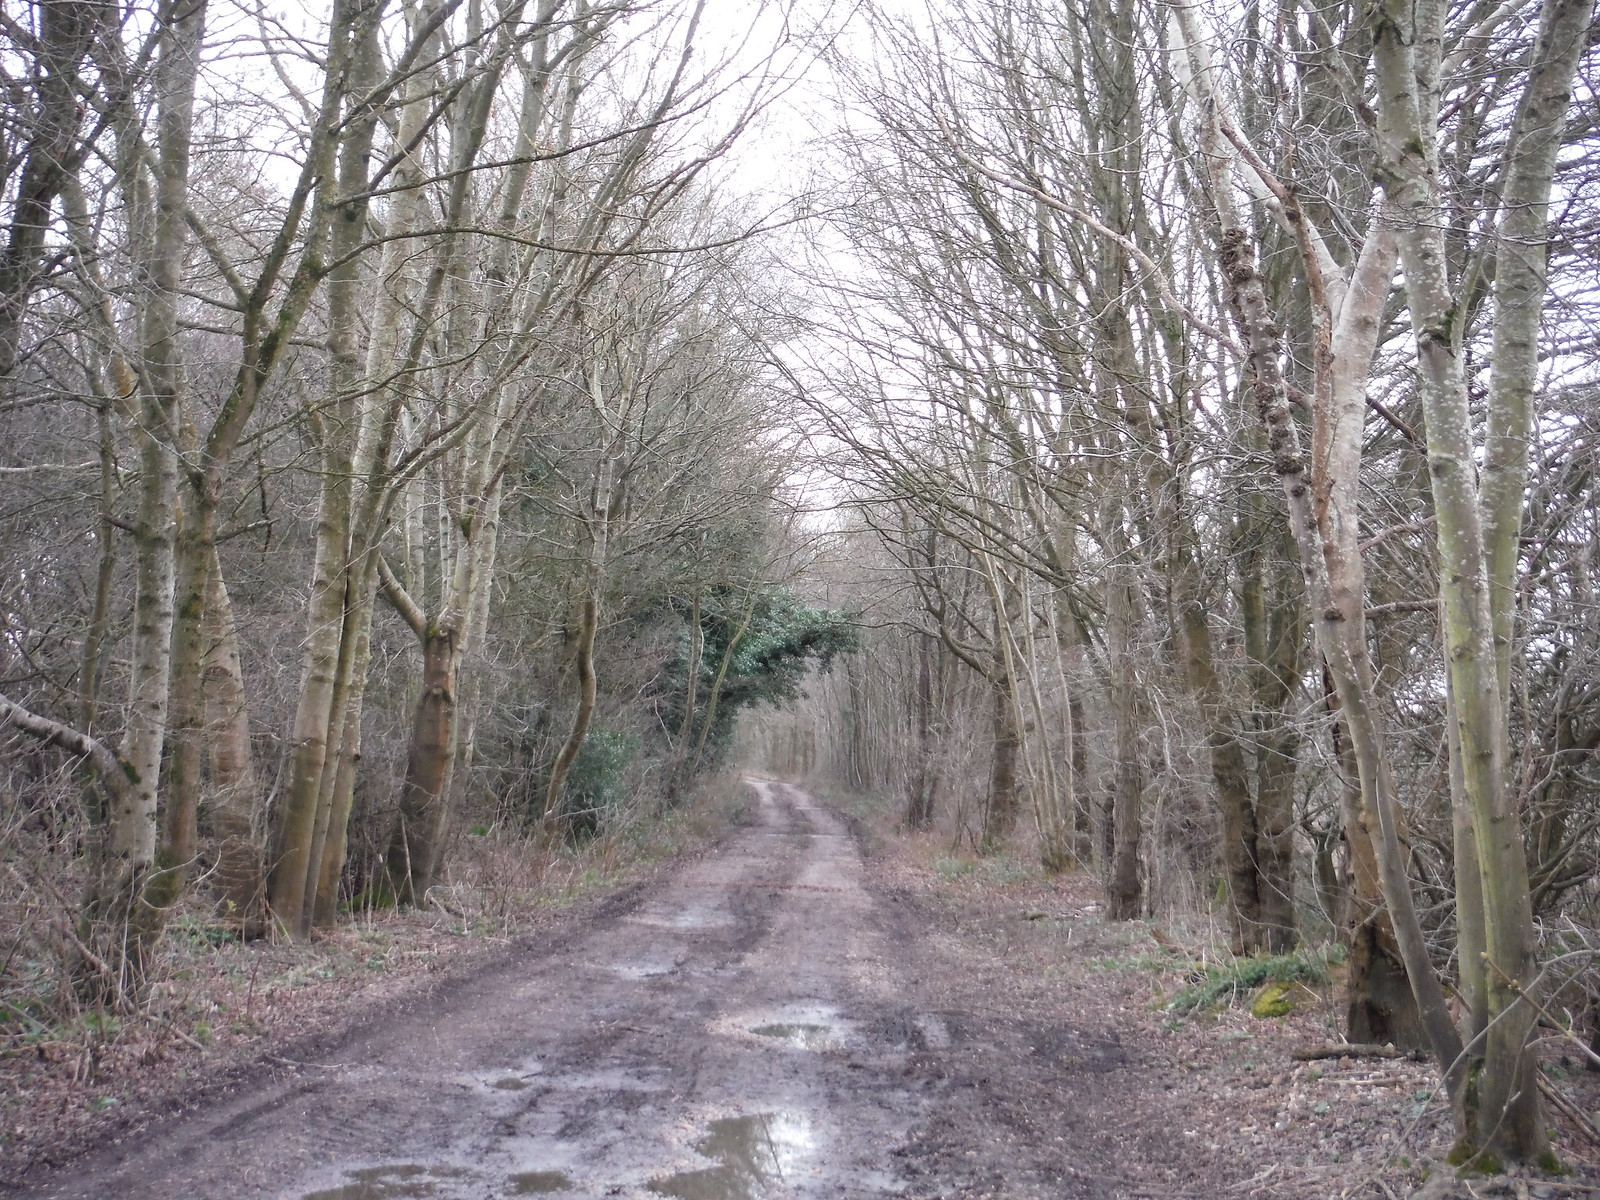 Course of the Wealden Line, SW of Uckfield, near Owlsbury Farm SWC Walk 262 Uckfield to Buxted